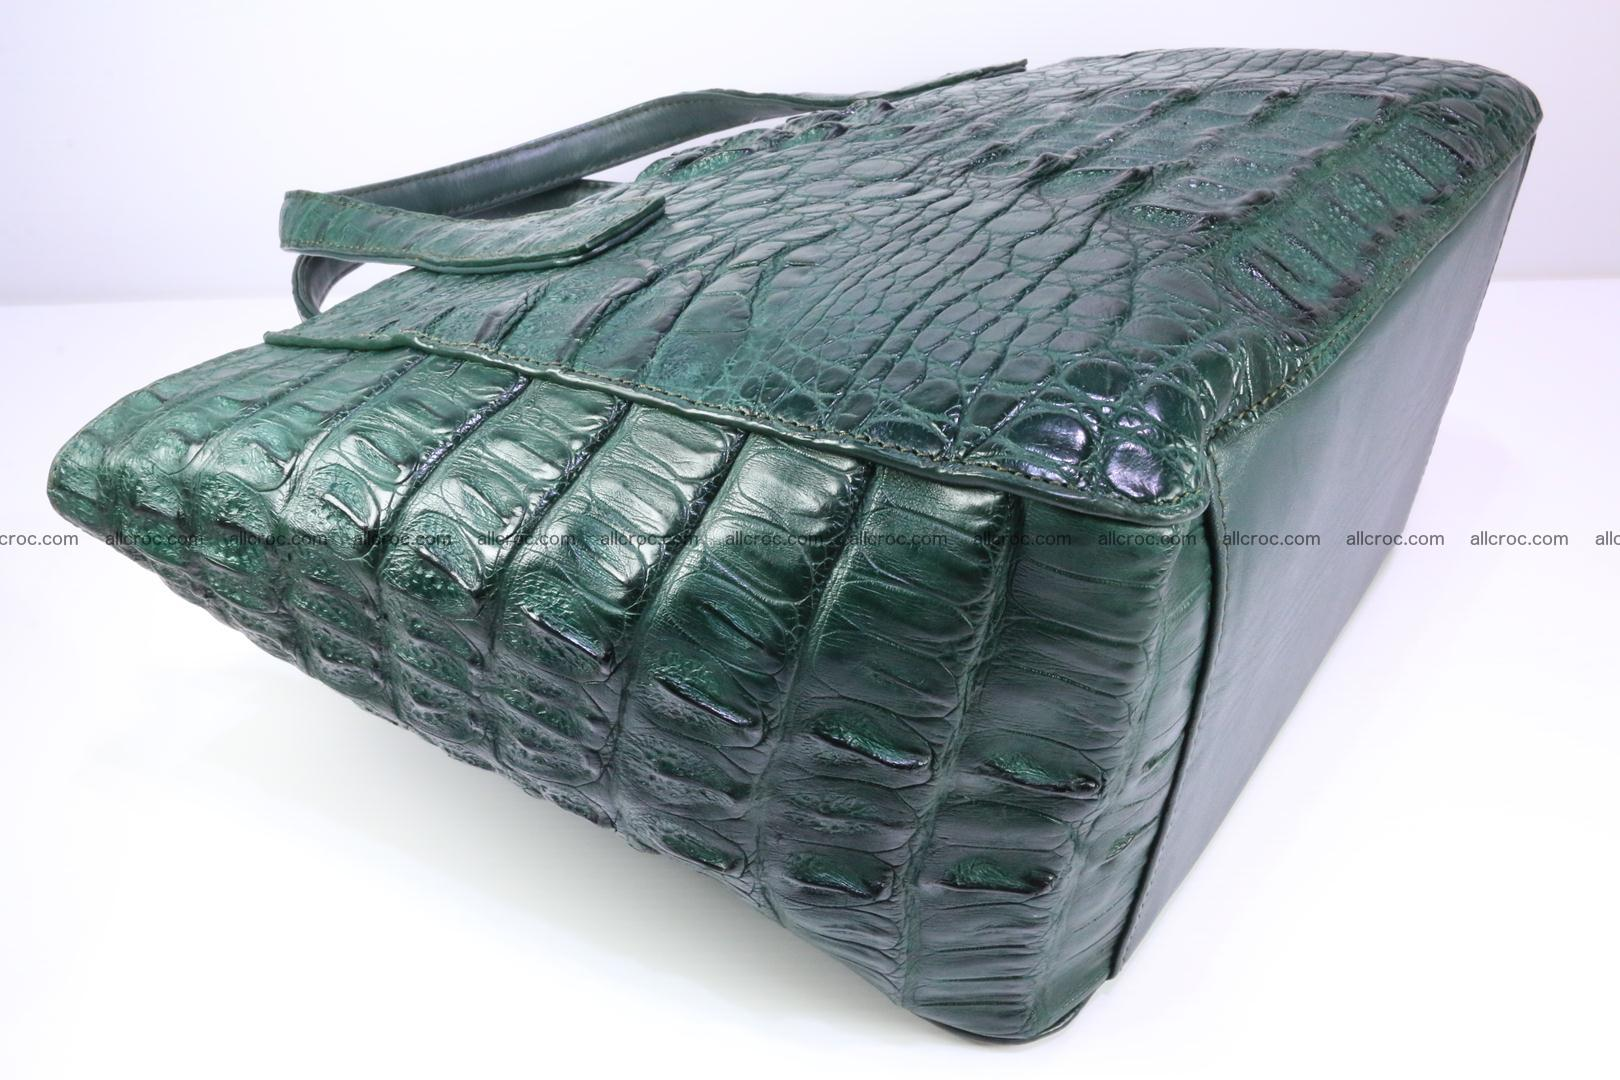 Genuine crocodile women's handbag 056 Foto 9